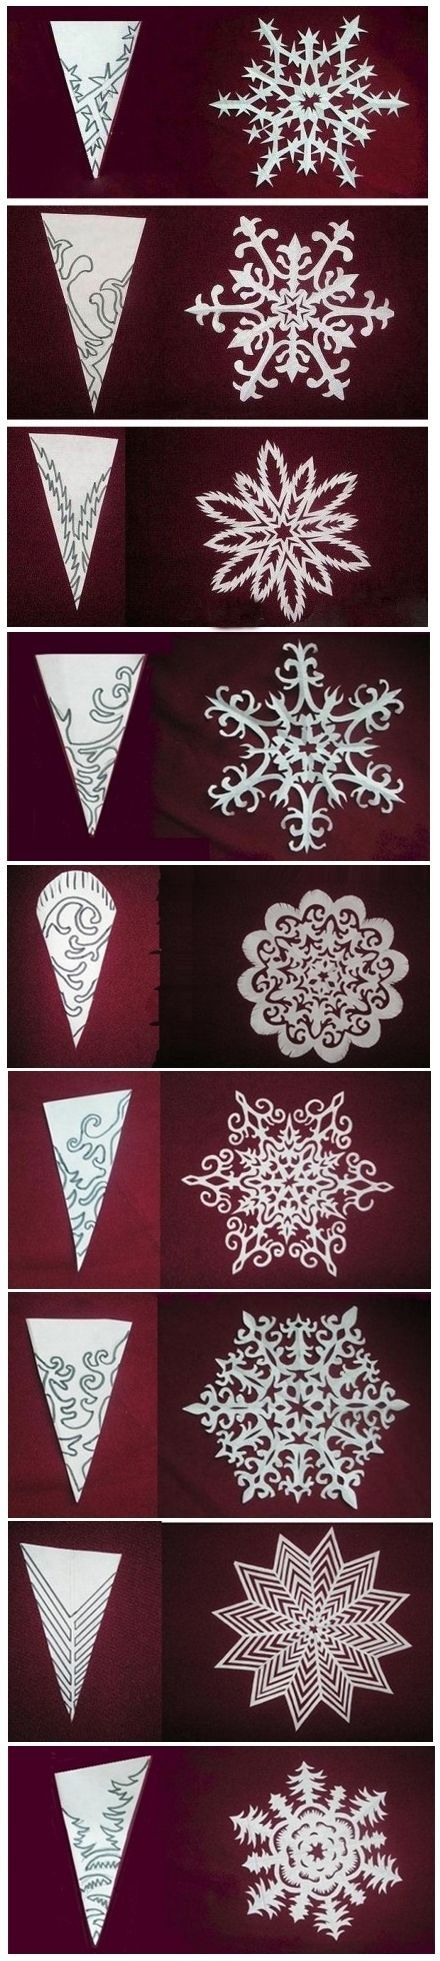 3d snowflake instructions printable